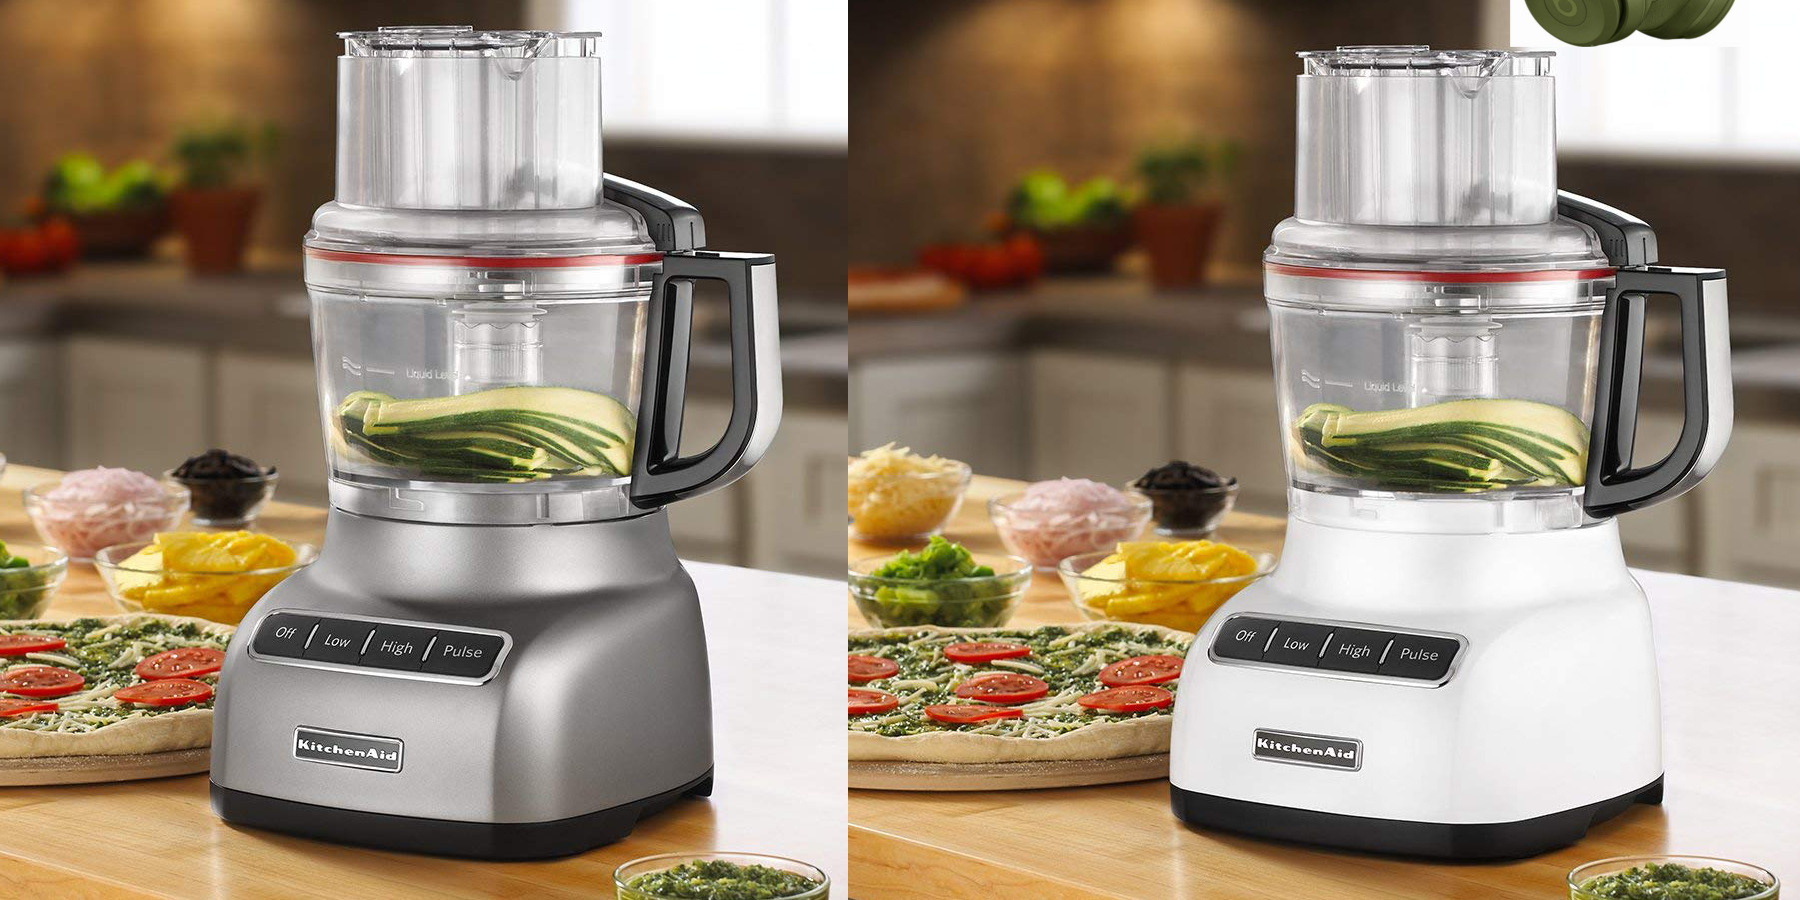 Let The Kitchenaid 9 Cup Food Processor Do The Work This Holiday